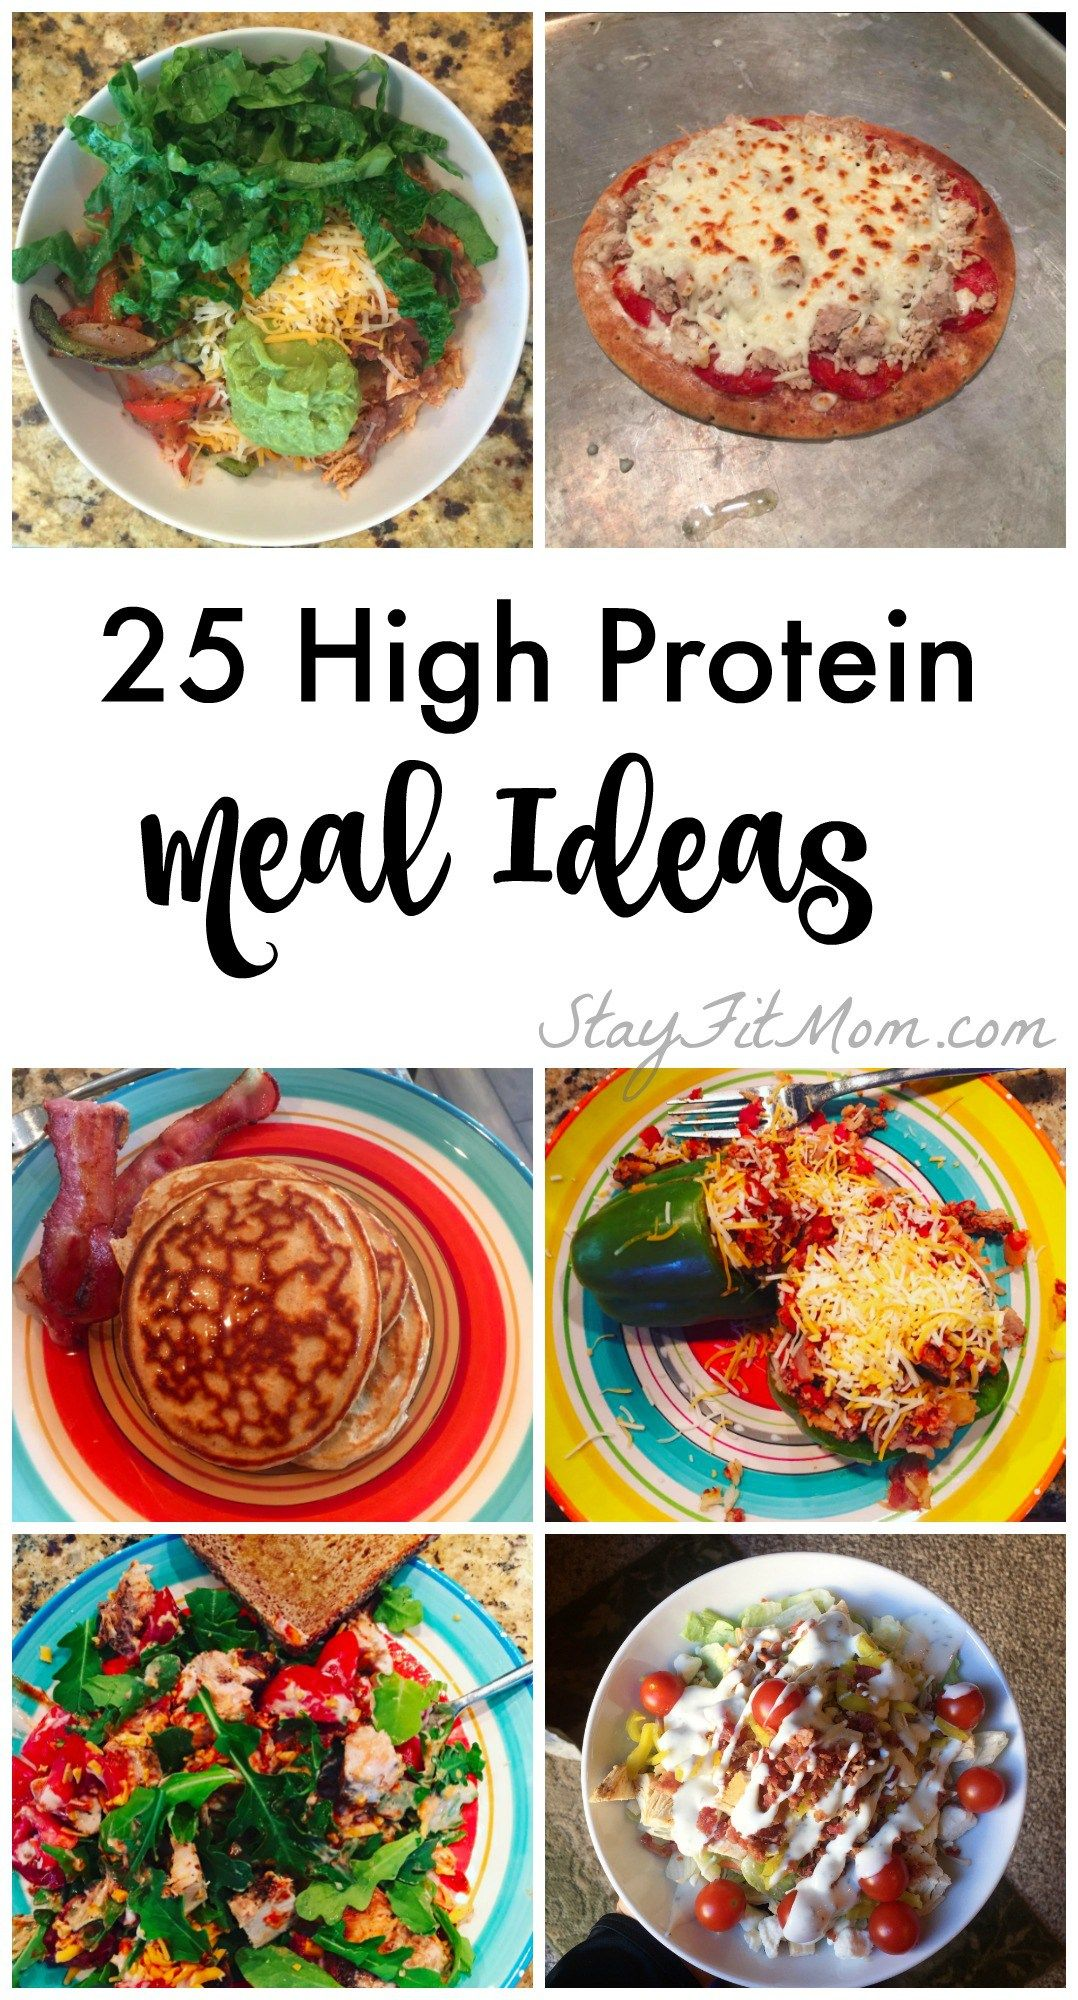 25 easy high protein meal ideas high protein meals high protein 25 easy high protein meal ideas stay fit mom forumfinder Choice Image